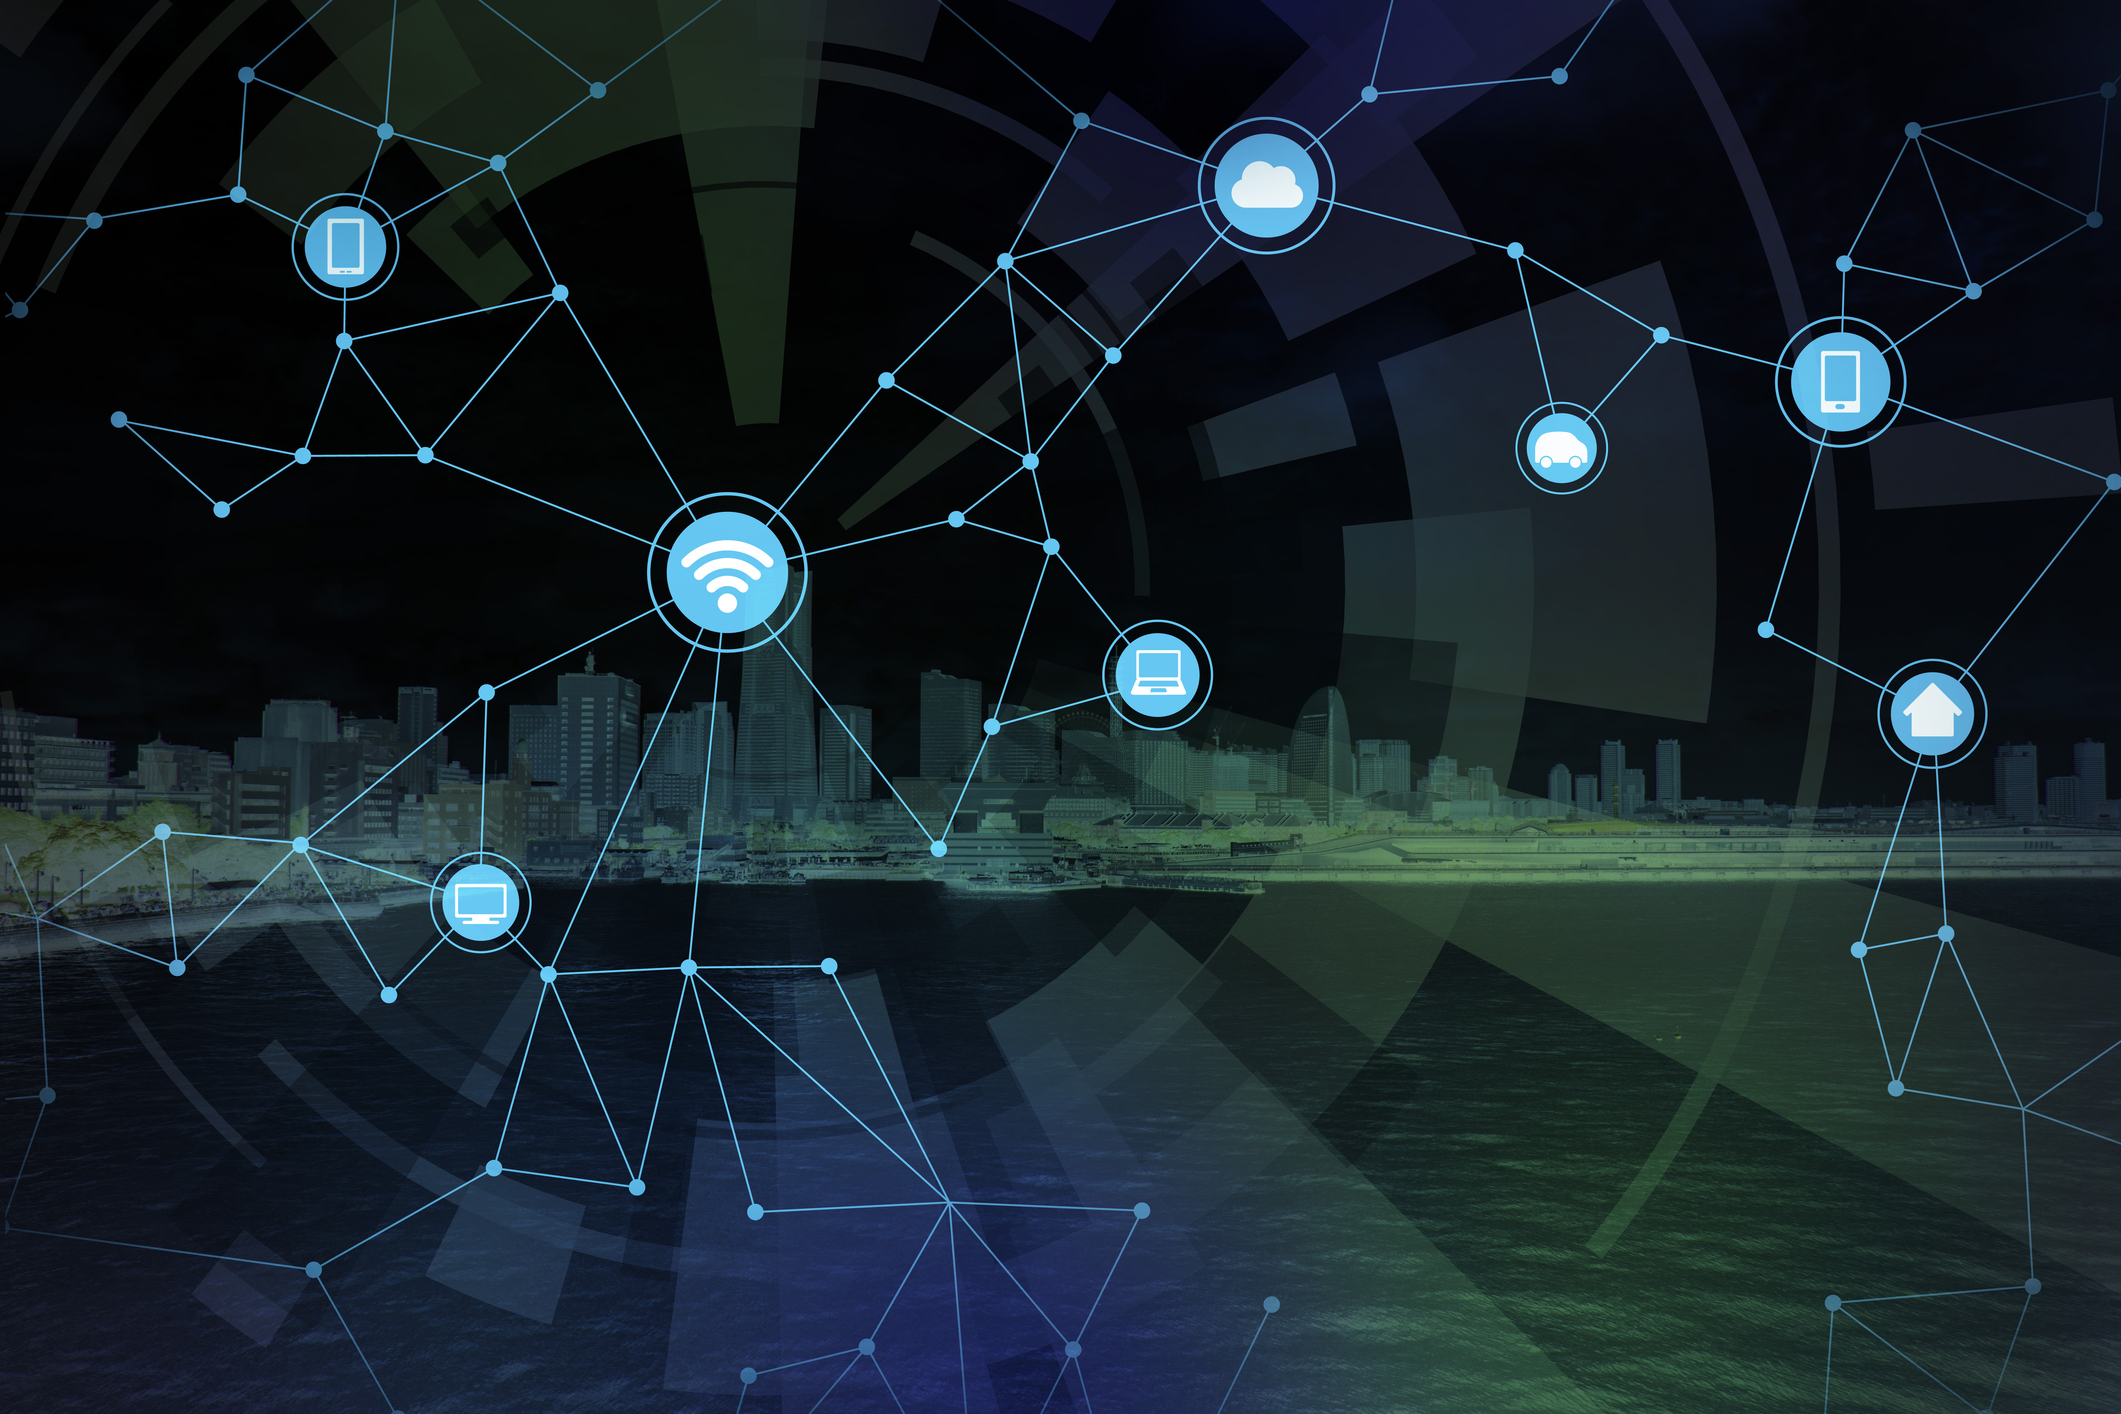 Energy Industry IoT Lessons Learned - Design First, Technology Second